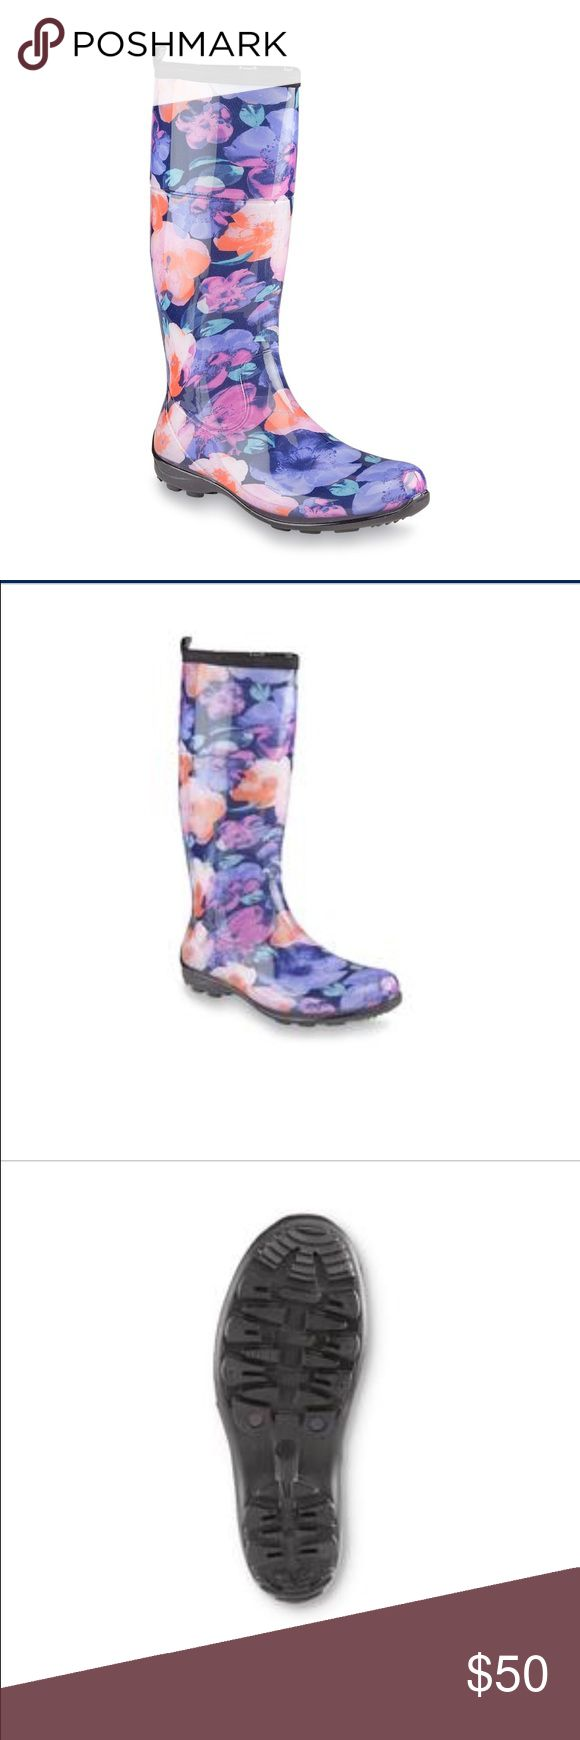 Kimik floral womens rain boots size 9 Womens floral rain boots. Size 9. Brand new in box. Pretty and waterproof. Kamik Shoes Winter & Rain Boots